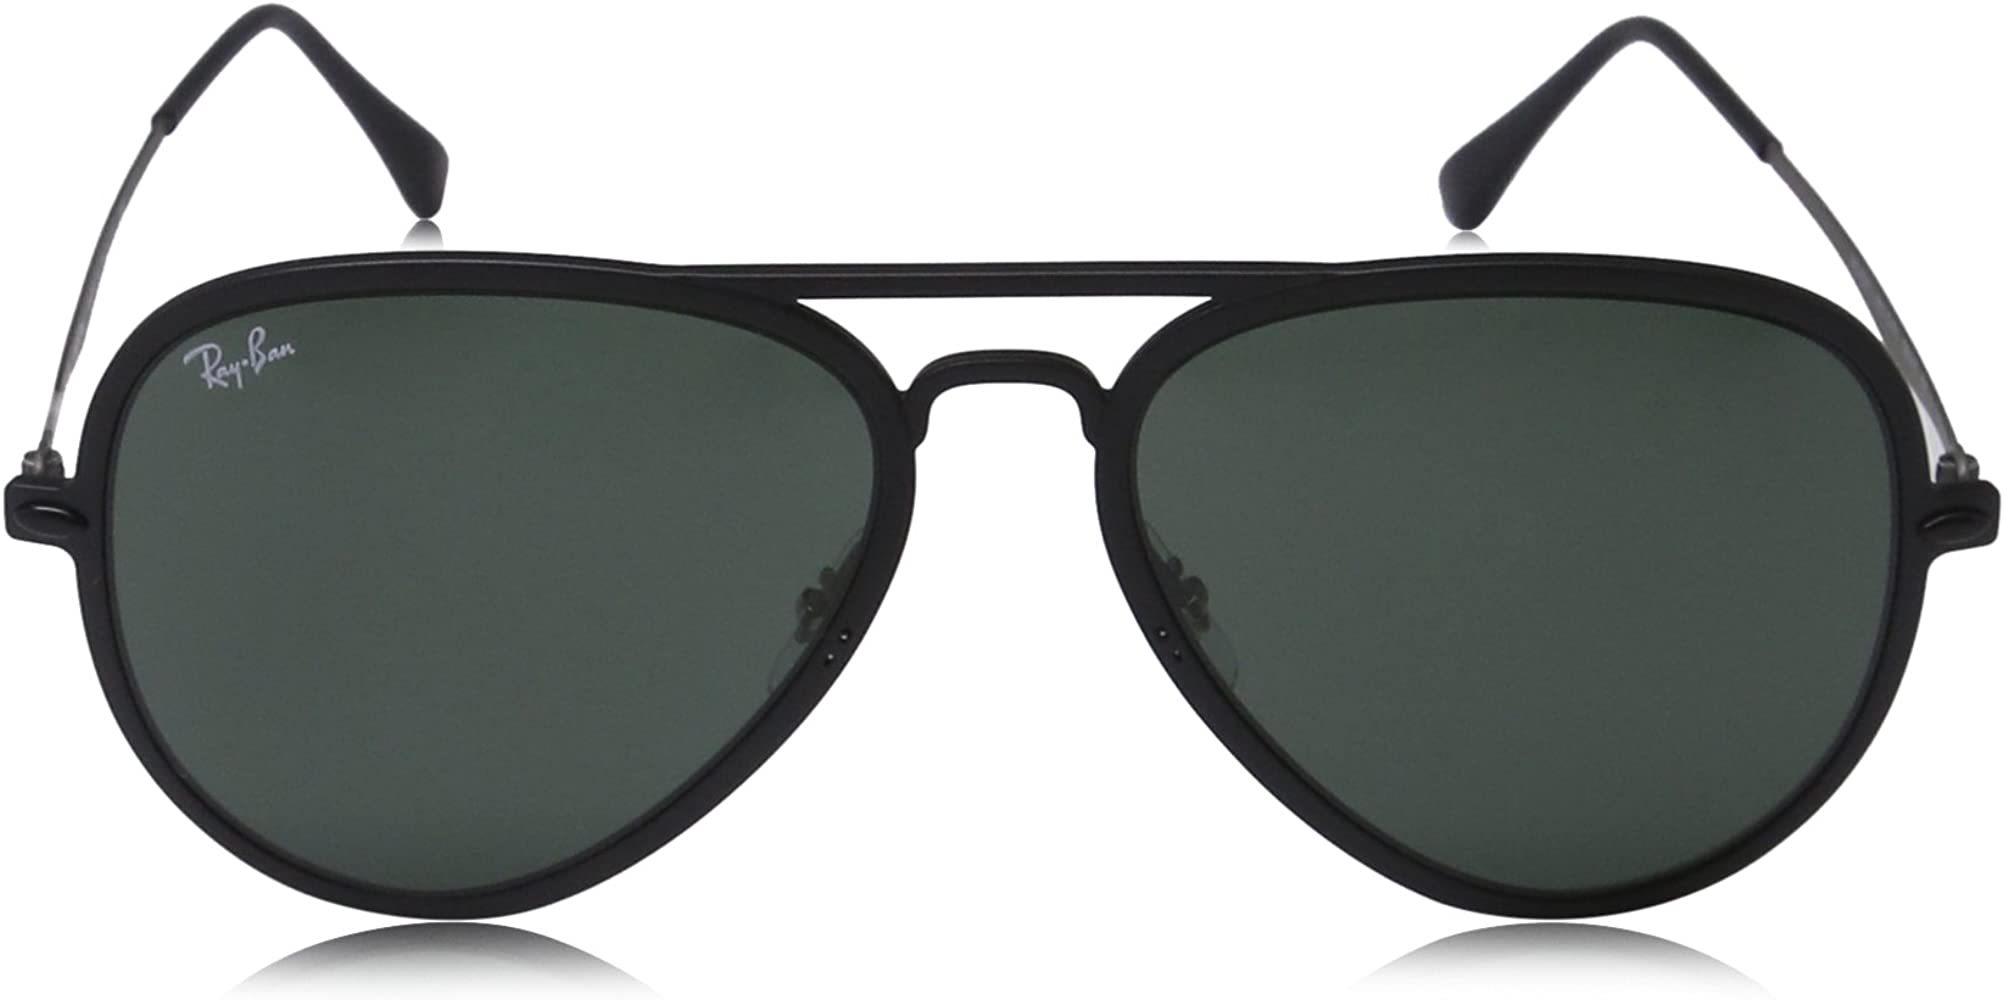 Ray-Ban Gafas de sol Aviator MATTE BLACK, 56: Amazon.es ...